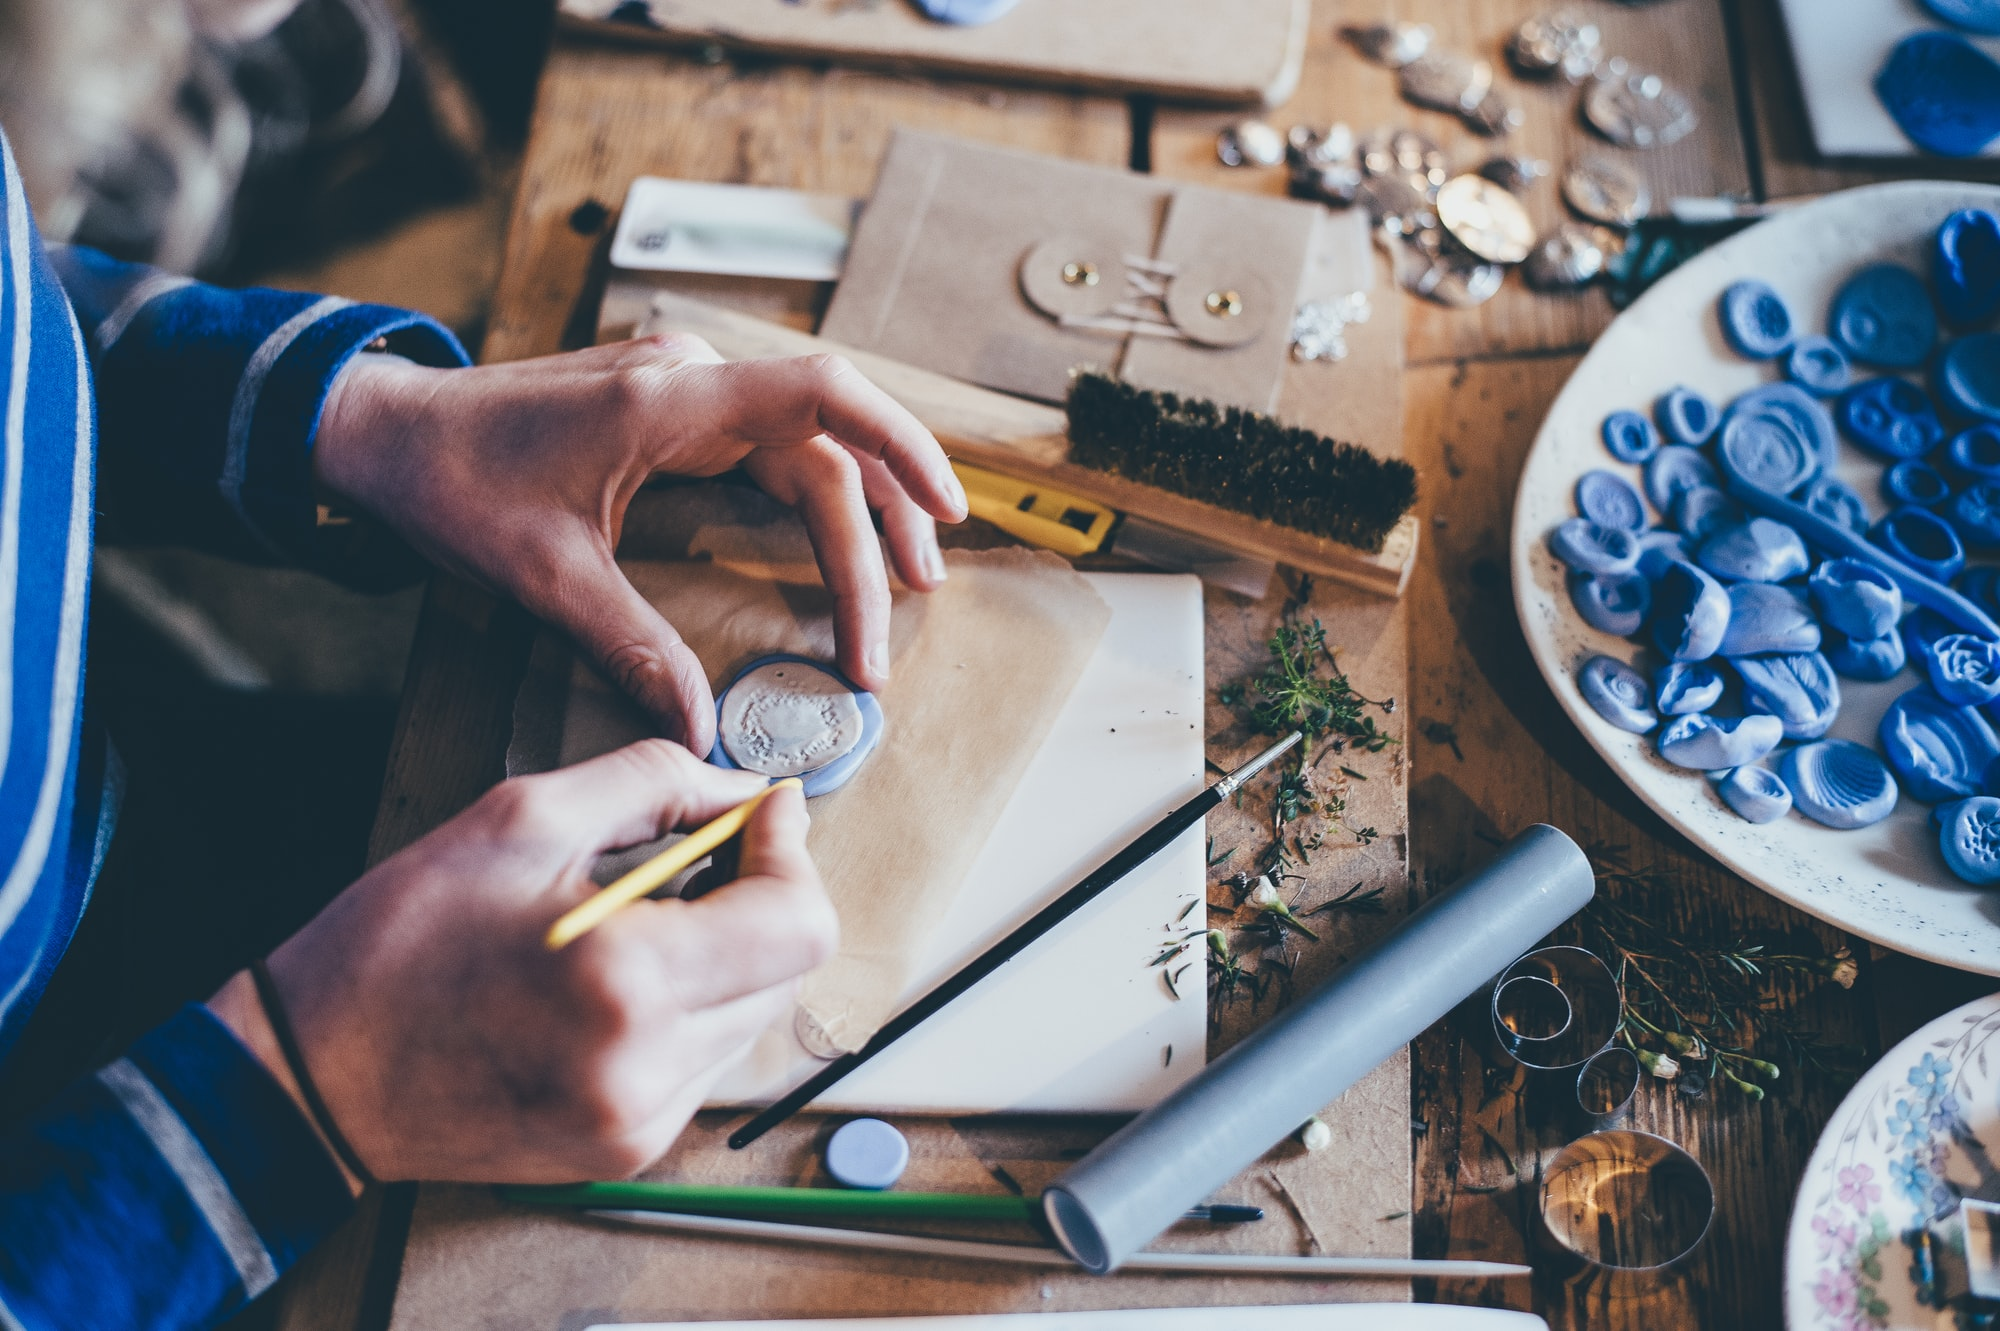 Learn hand crafting like a pro